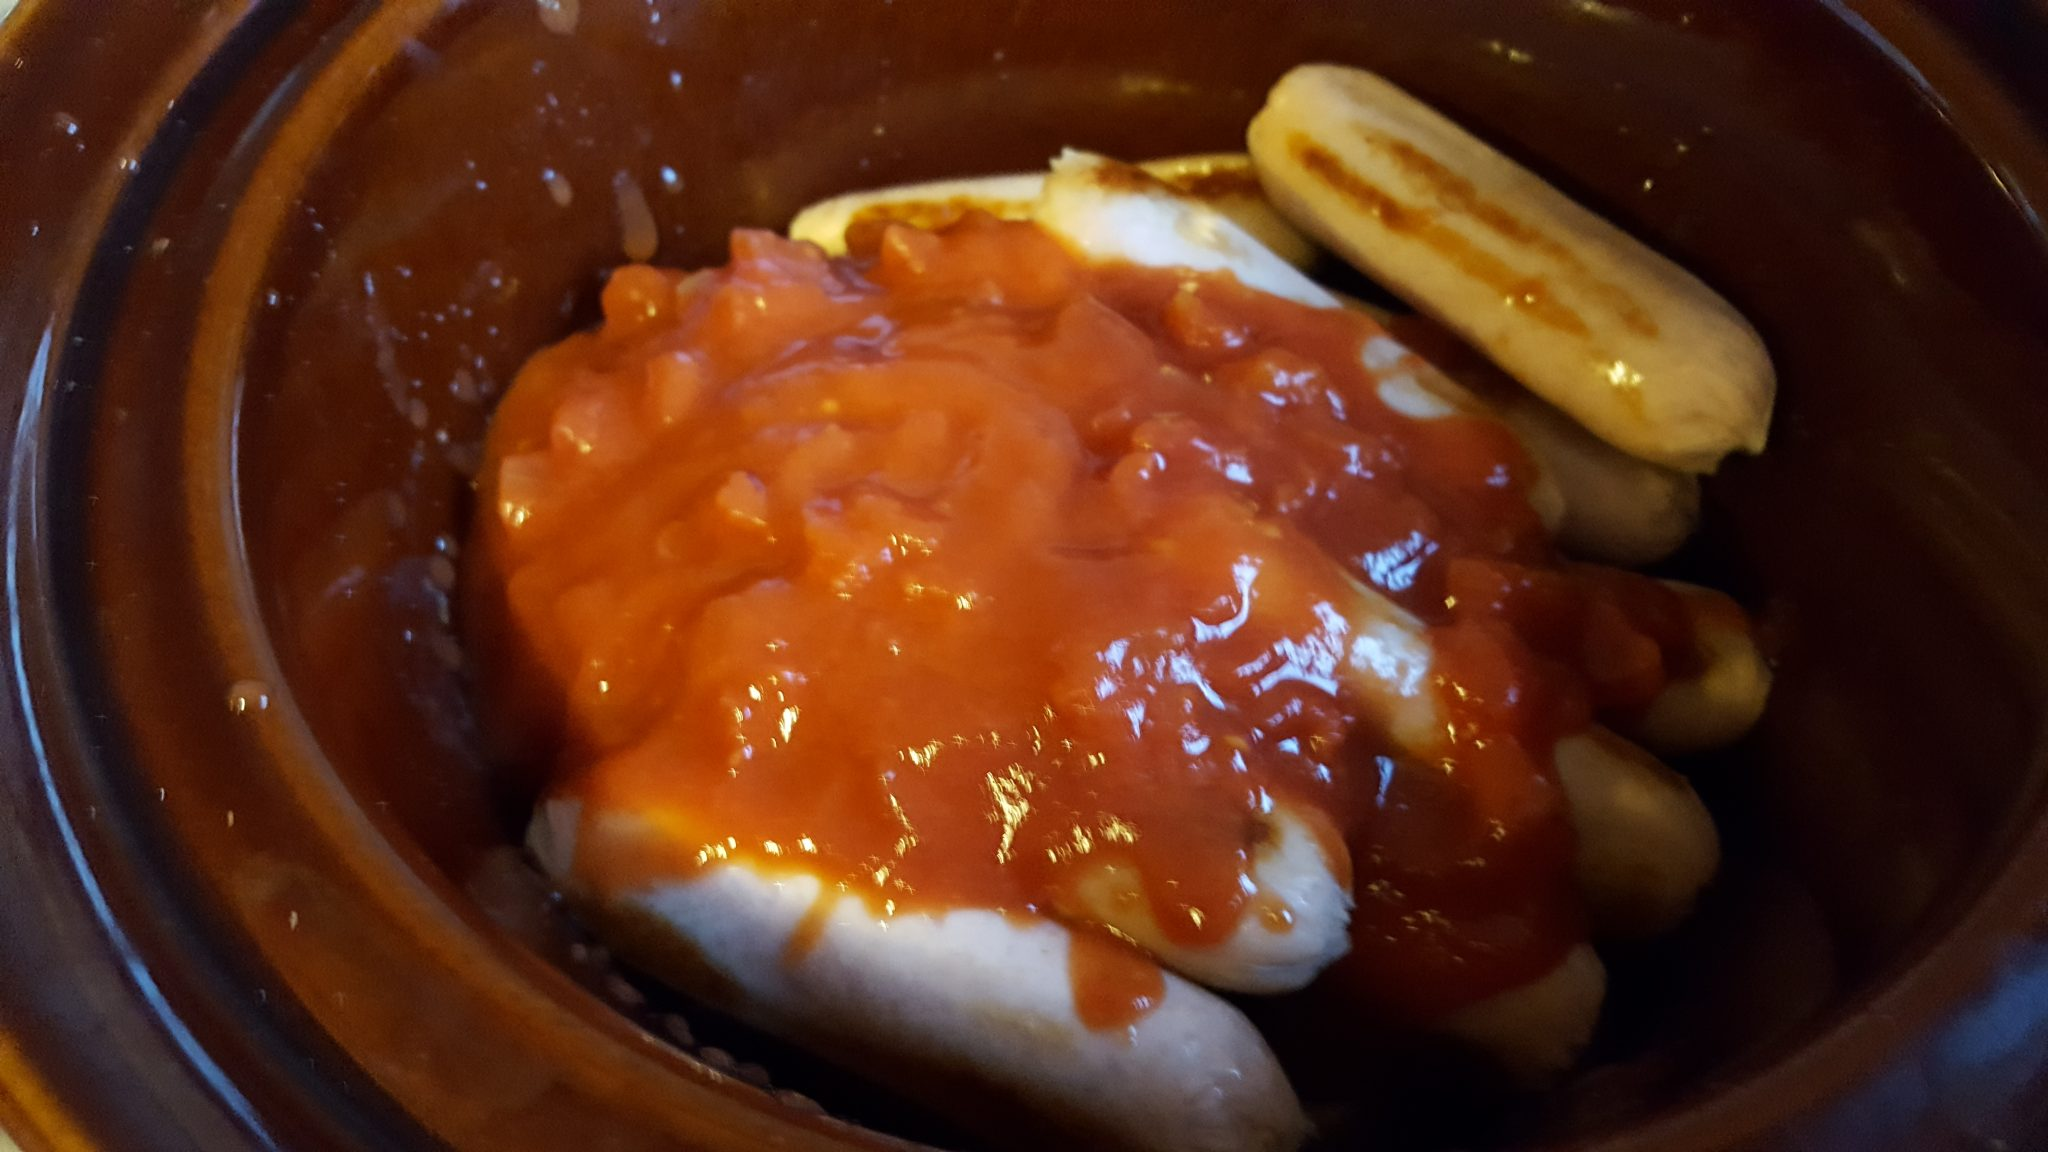 I dont add any packets or tins to my casserole. Just 1 tin of chopped tomatos and a tin of baked beans. You can of course buy seasoning packs but my boys prefer it this way.